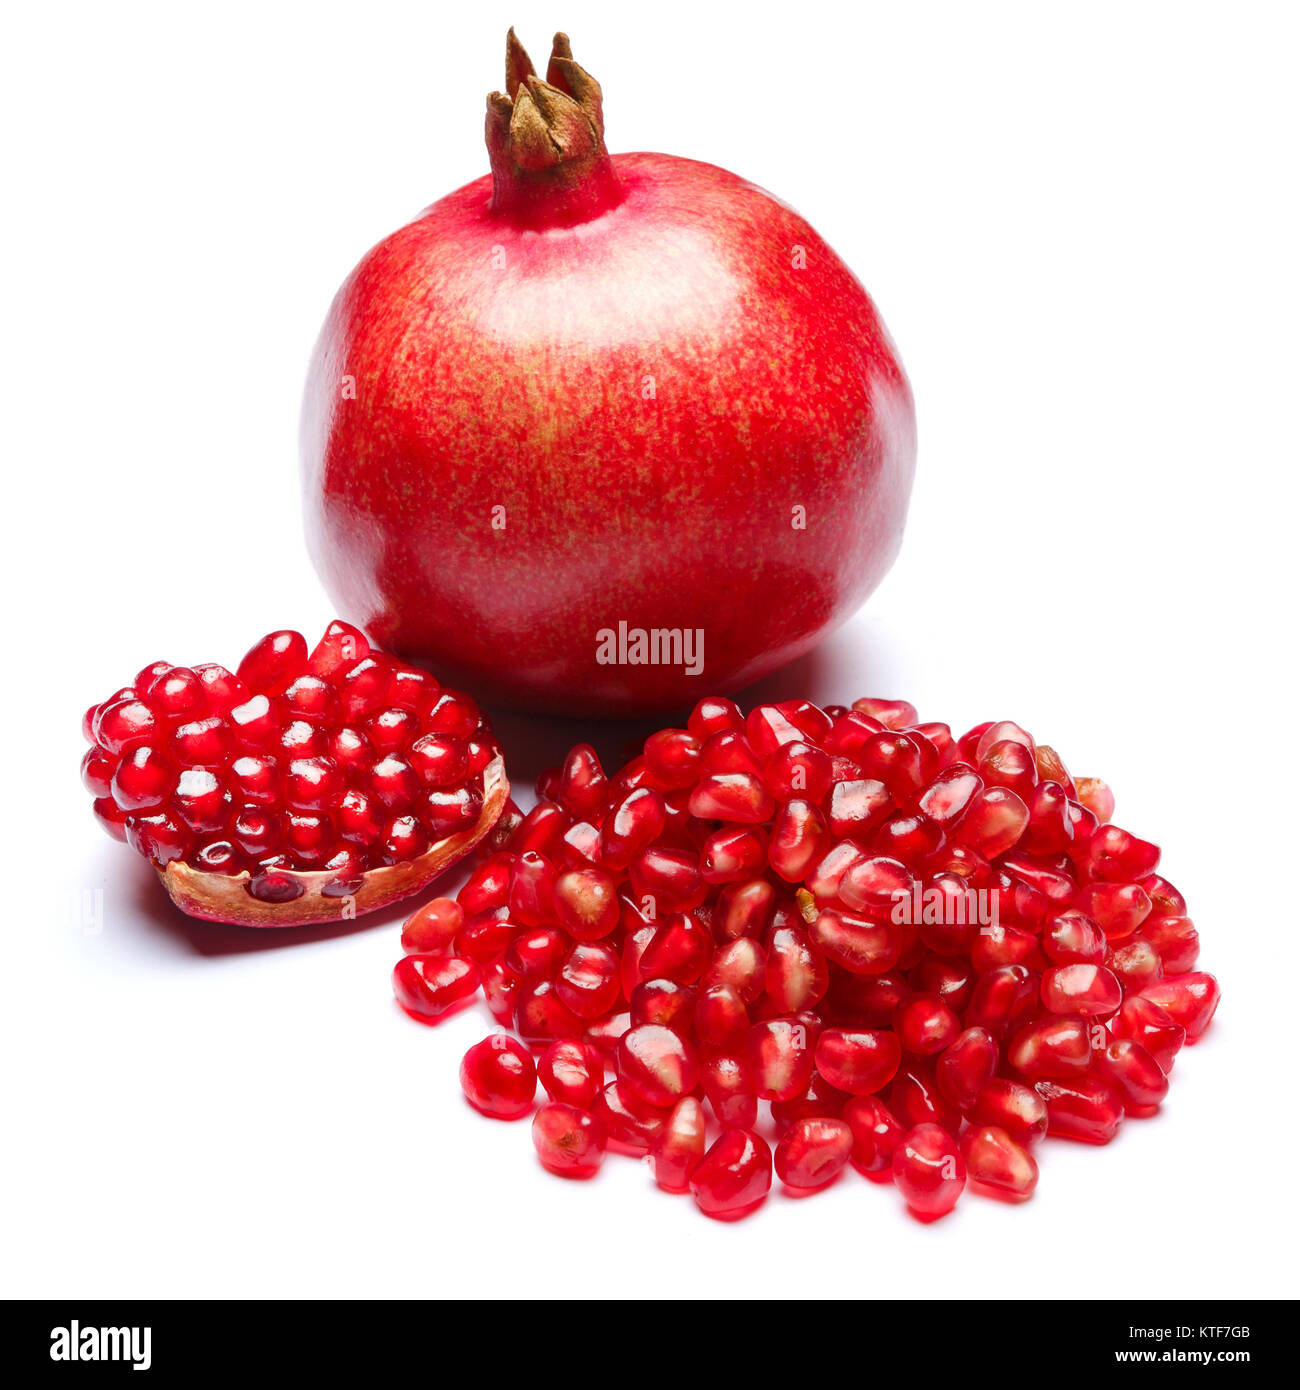 Pomegranate and seeds on white background close-up - Stock Image